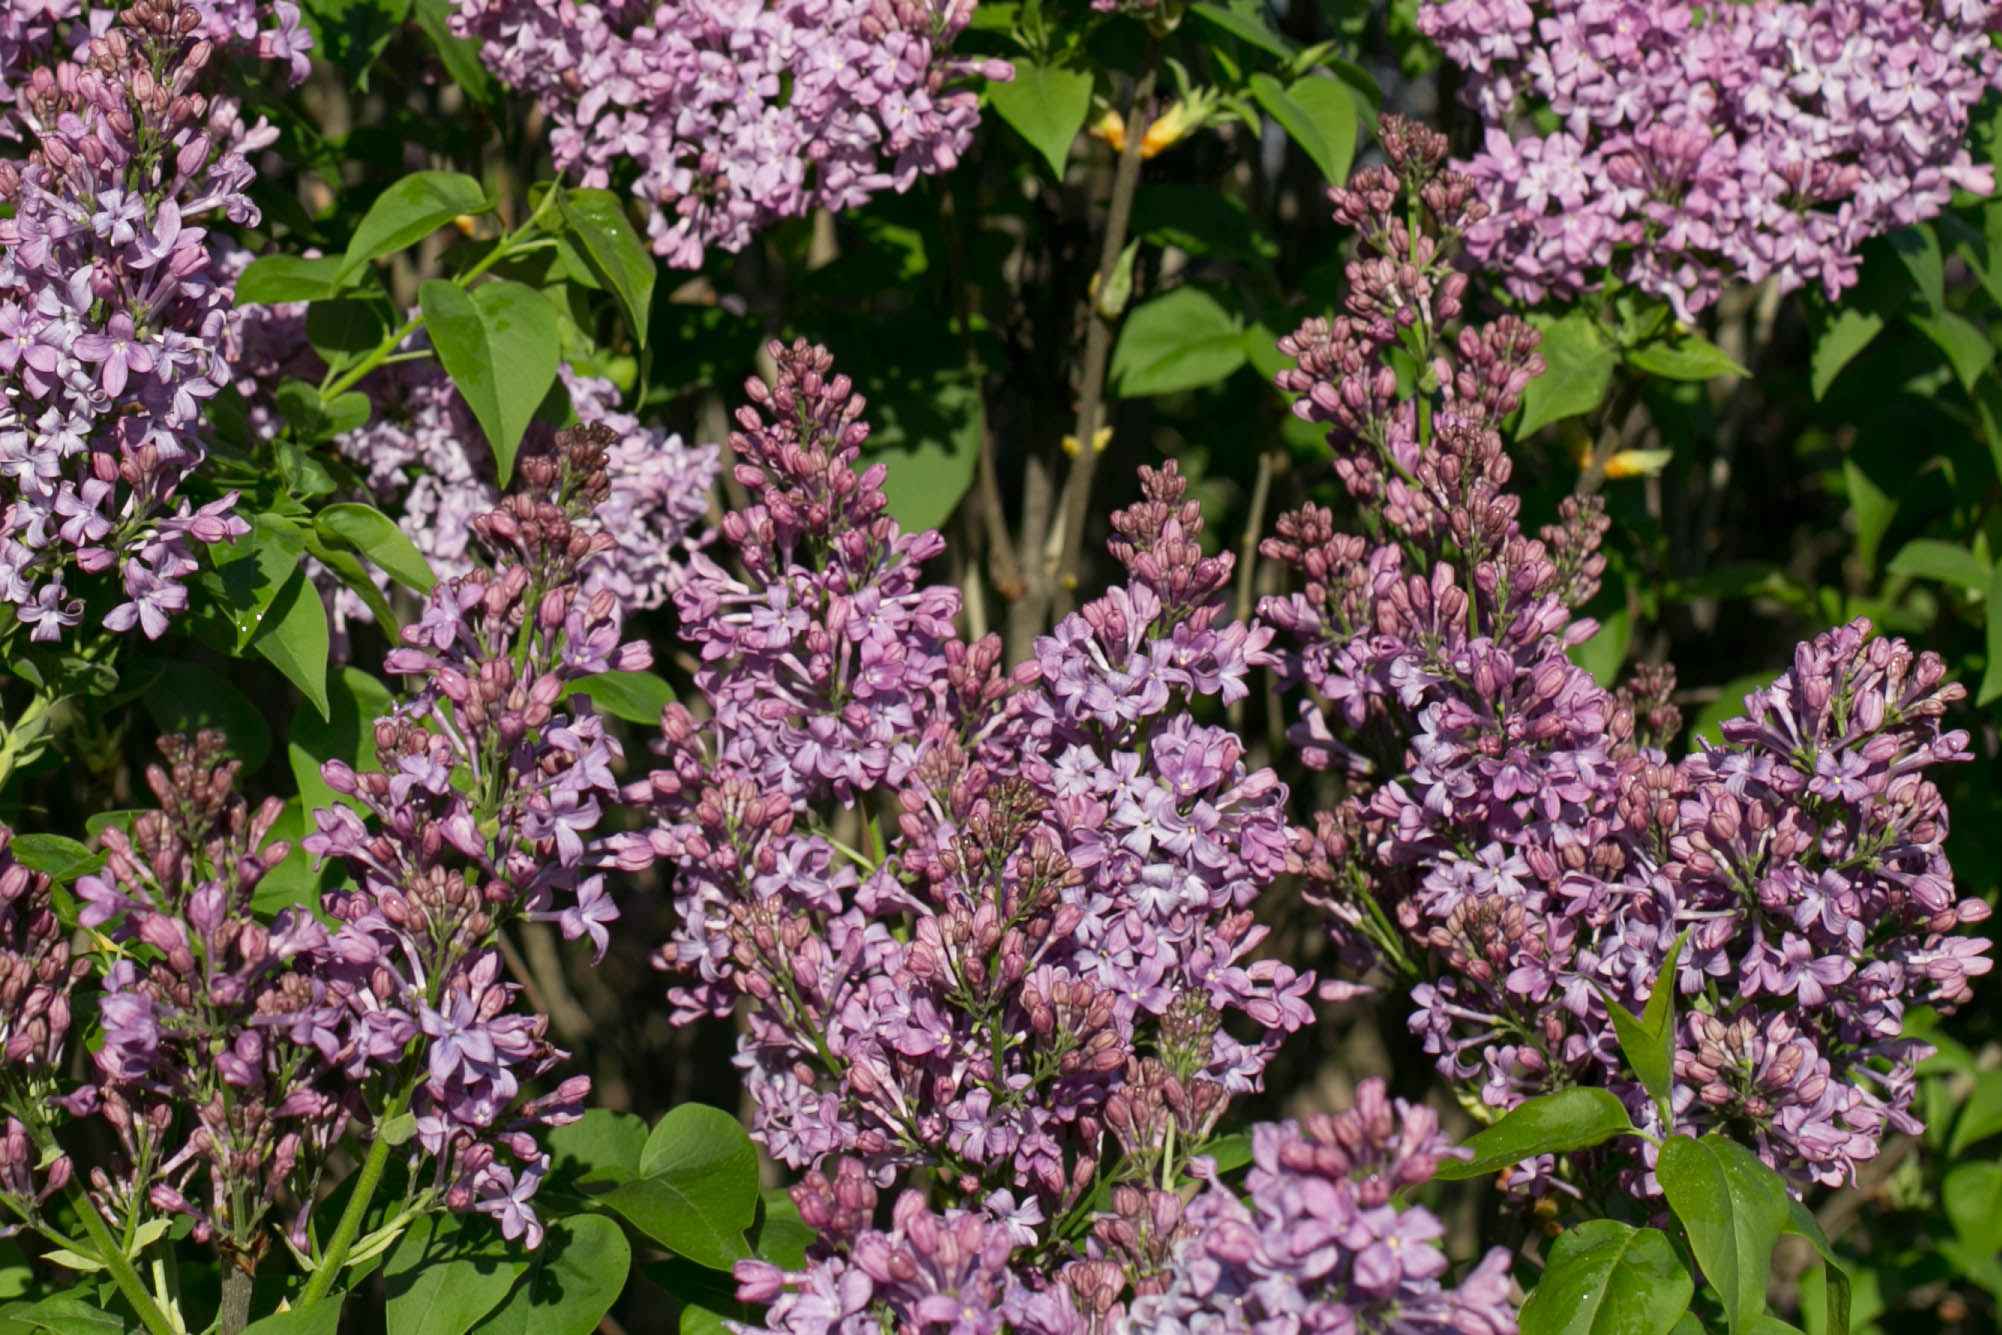 'Lilac Lady' Lilac has legendary fragrance and makes a superb cut-flower